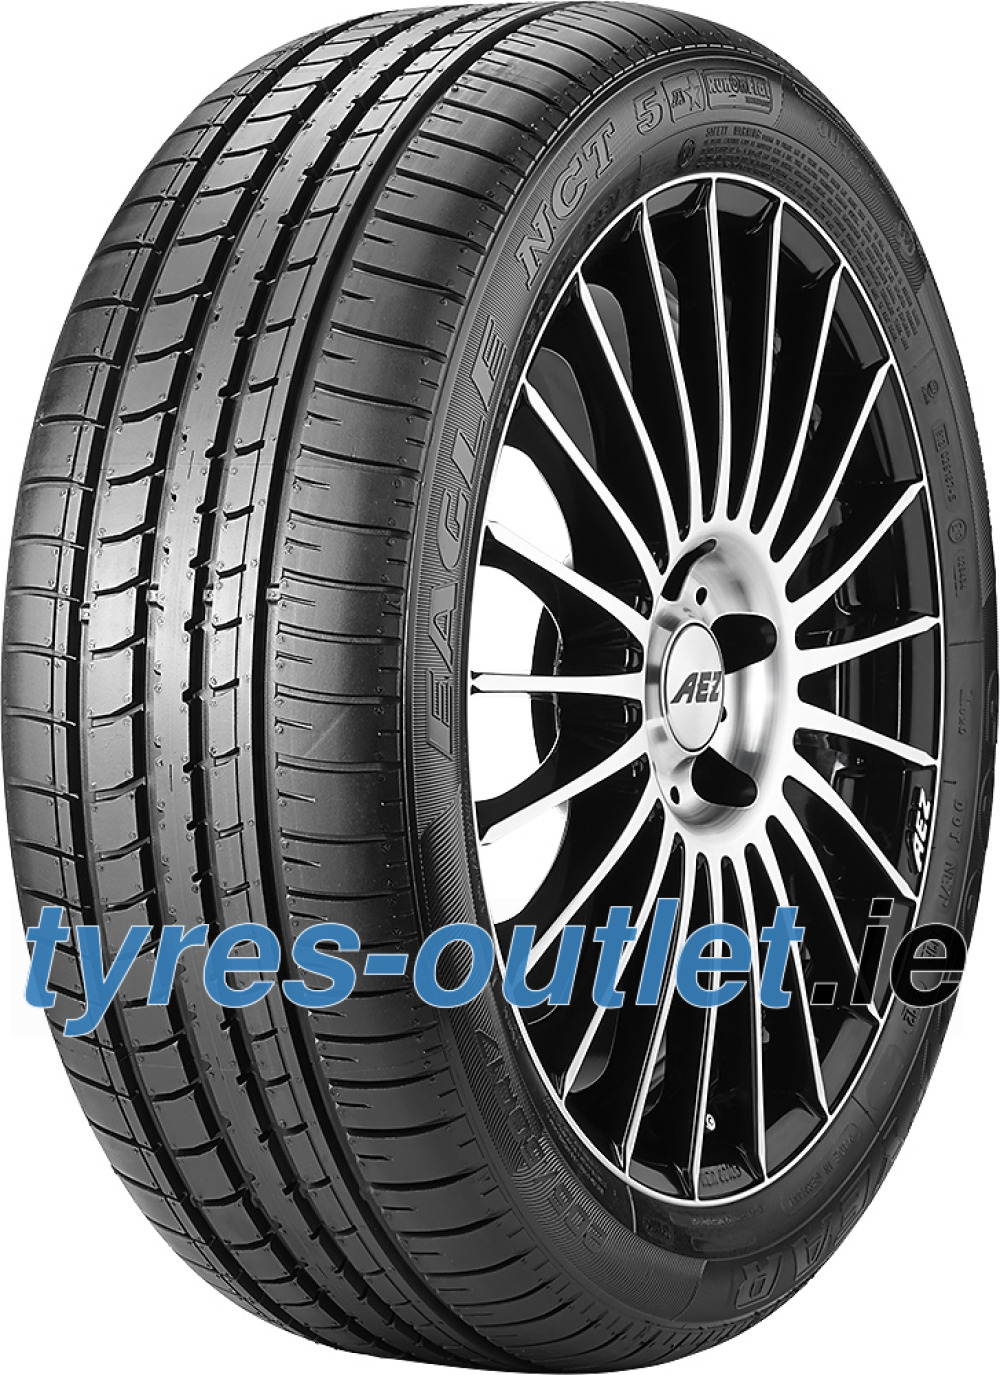 Goodyear Eagle NCT 5 Asymmetric ROF ( 225/40 R18 88W *, with rim protection (MFS), runflat )